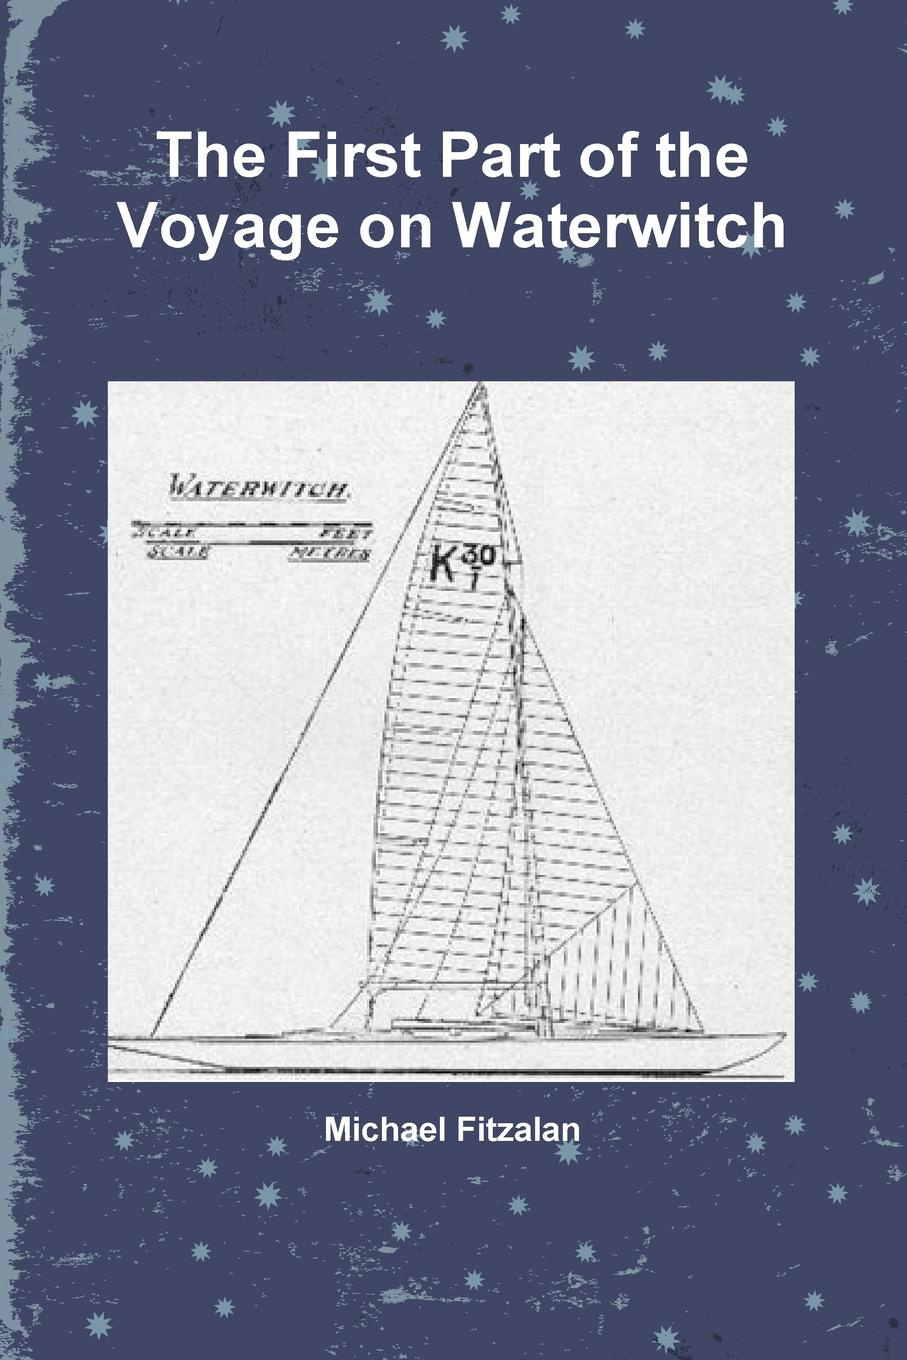 Michael Fitzalan The First Part of the Voyage on Waterwitch